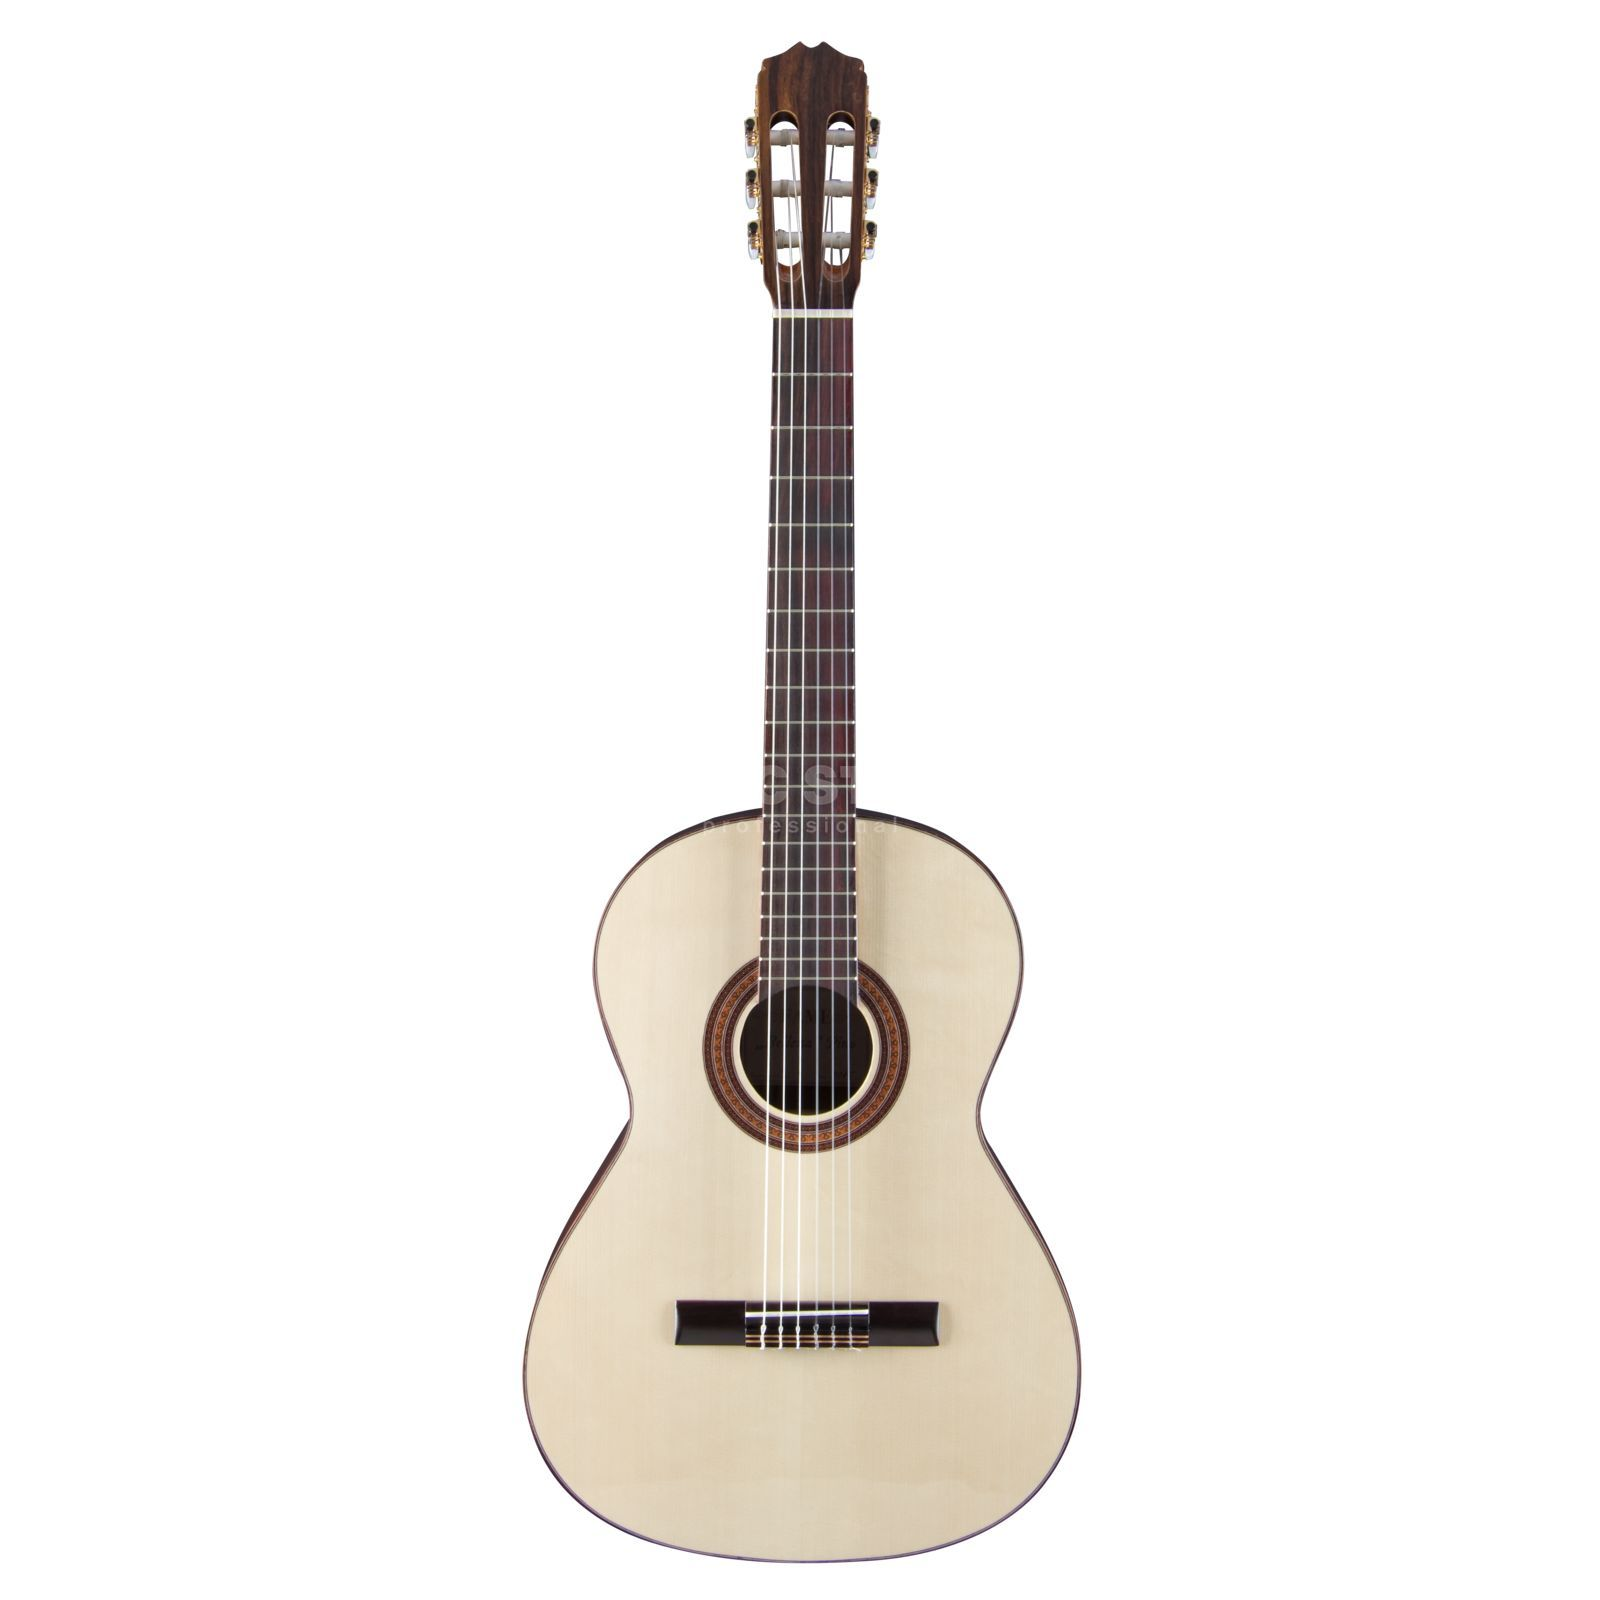 Fame Belleza Pino - Solid Spruce Top/Rosewood Imagen del producto